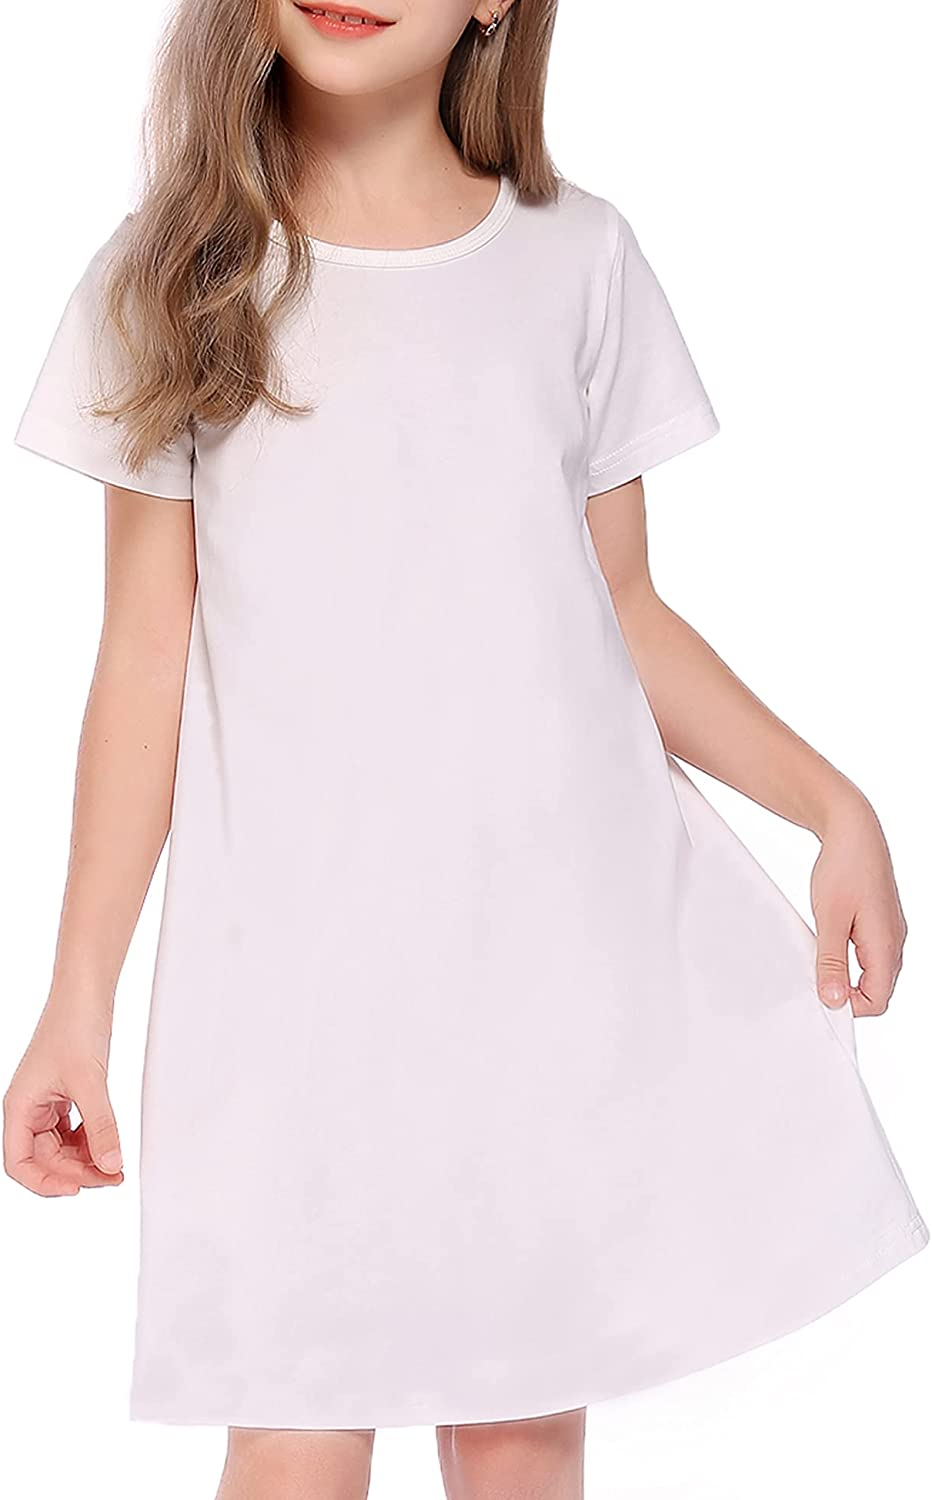 Boyoo Girls Cotton Dress Short Gorgeous Sleeve Pure Colo Crew Neck Max 87% OFF A Line